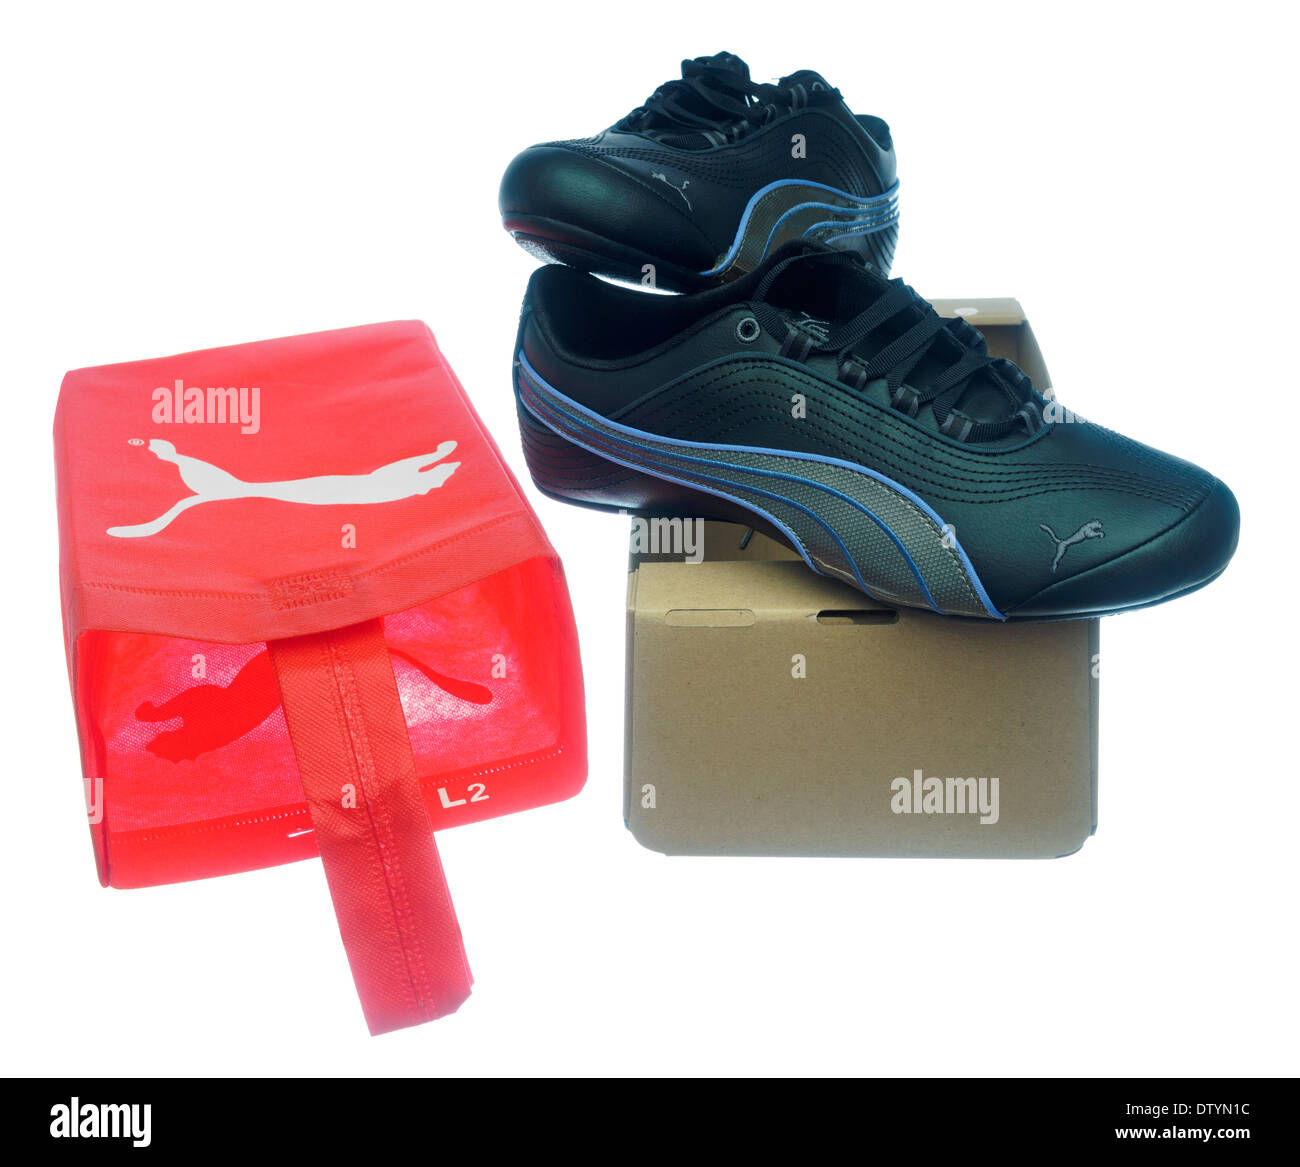 4fc54c5a054f0b Puma Shoes Stock Photos   Puma Shoes Stock Images - Page 2 - Alamy